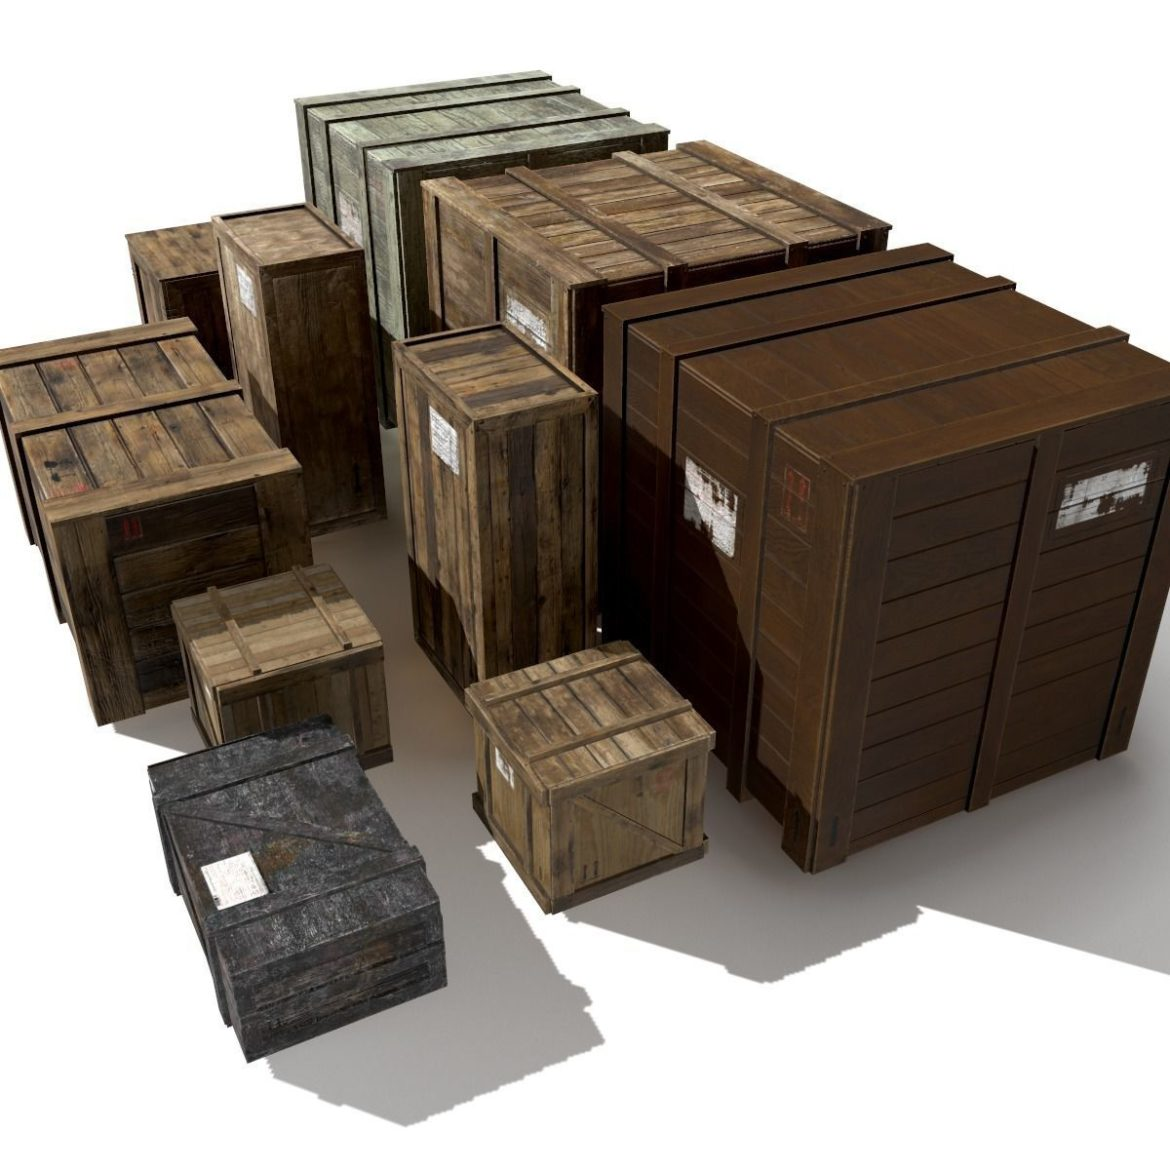 transport crates pack 3 3d model fbx obj 319432